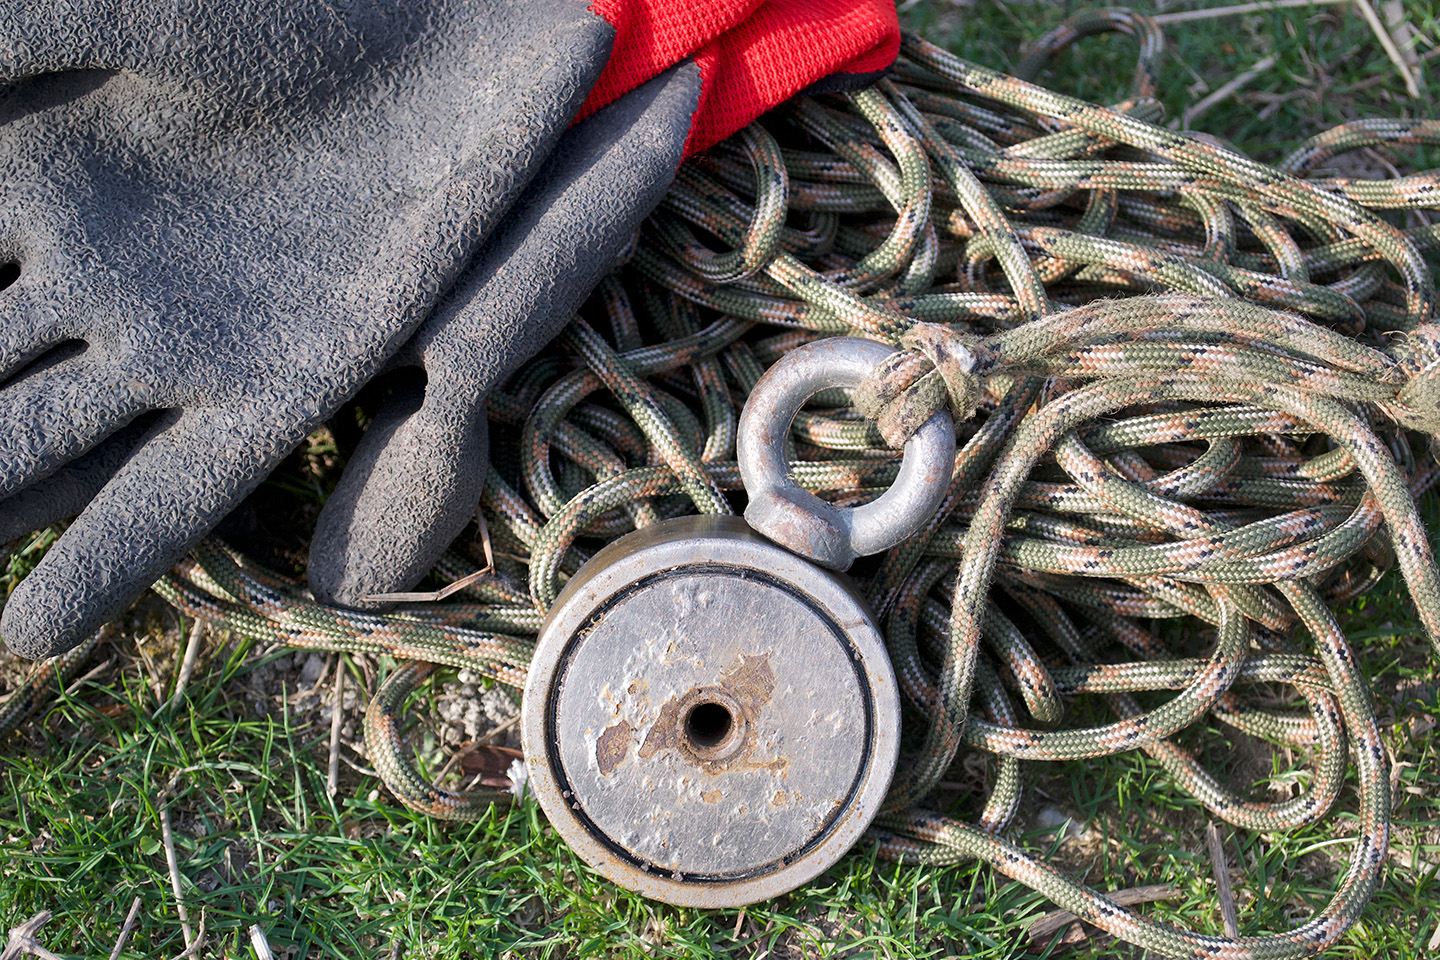 A fishing magnet attached to thick rope, with a set of work gloves